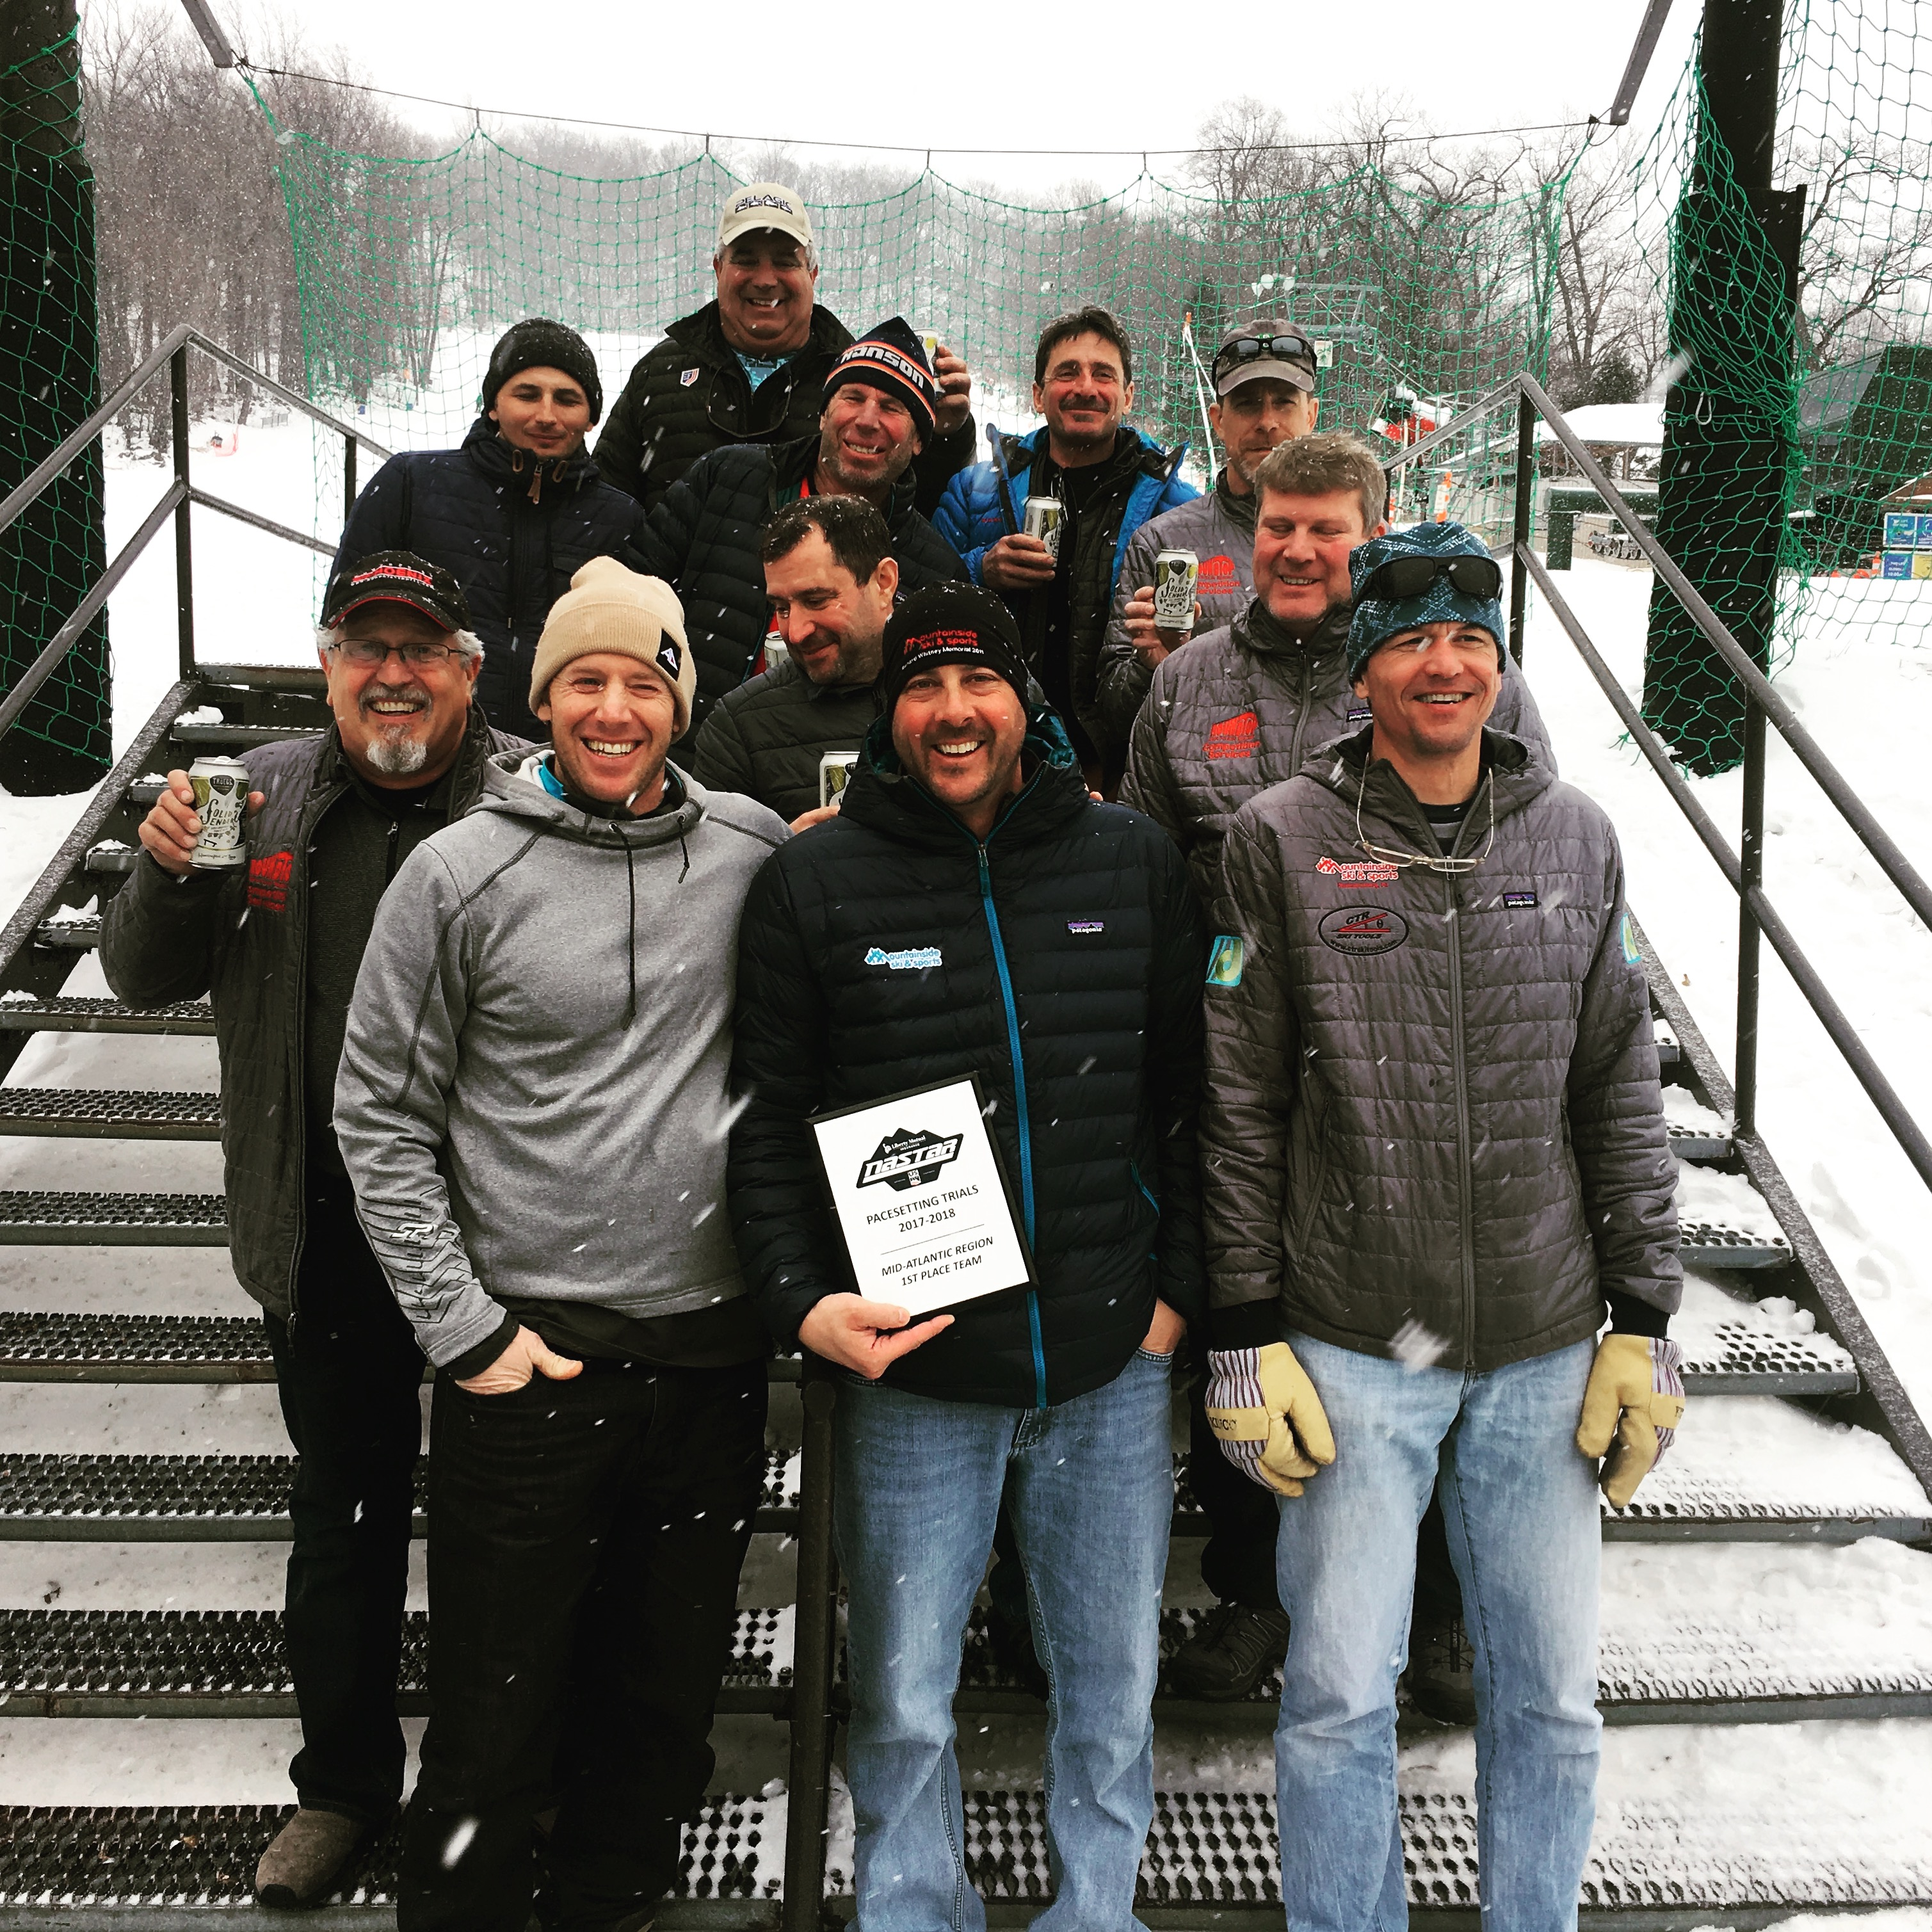 Team Roundtop won the Race of Champions at Roundtop